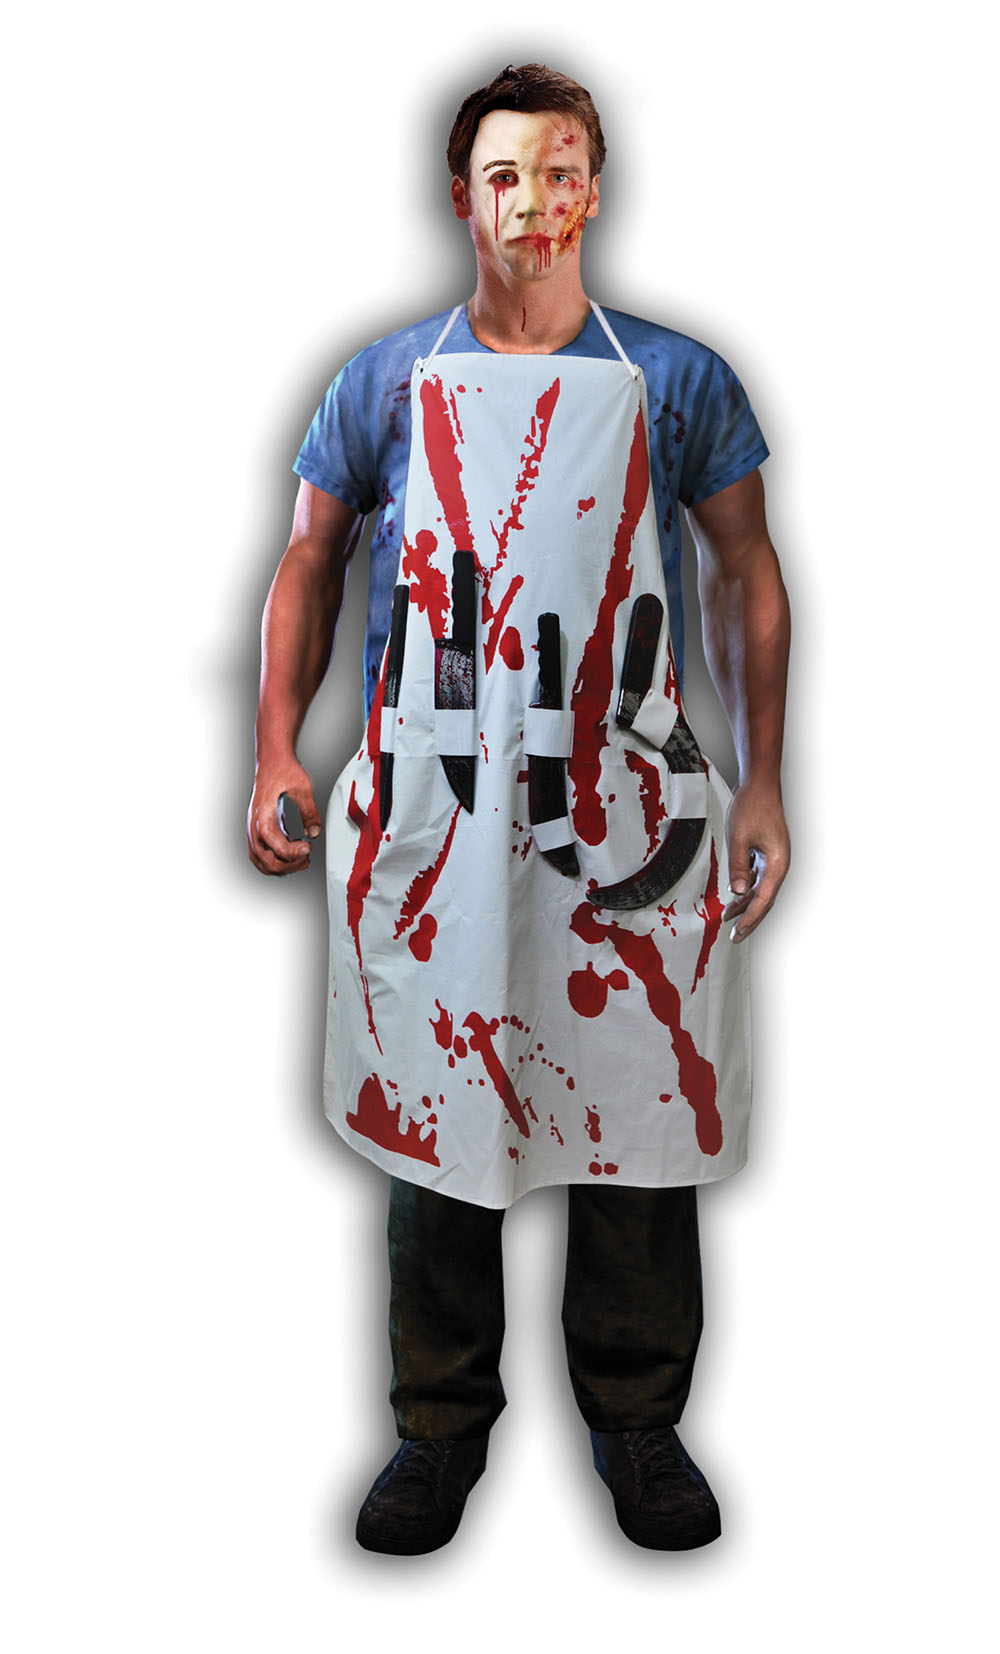 Bloody_apron_costume